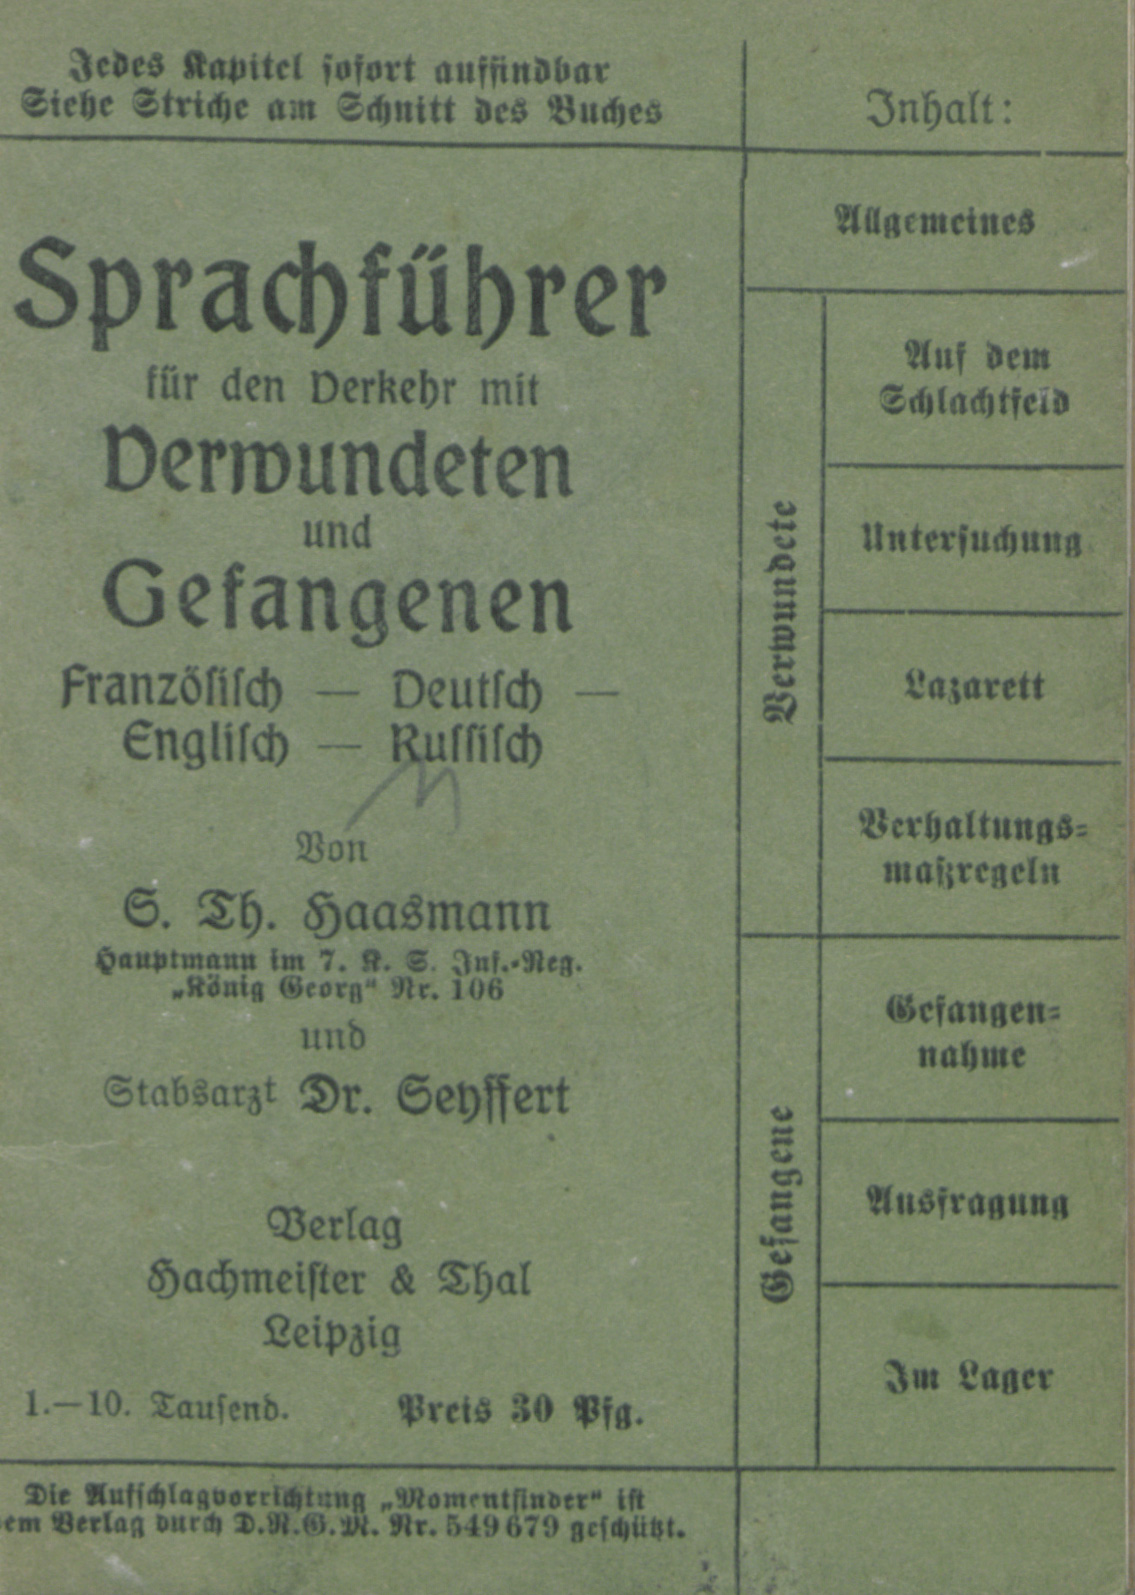 This multilingual phrasebook, published in 1914, helped German soldiers and hospital workers to communicate with non-German-speaking wounded or captured soldiers.